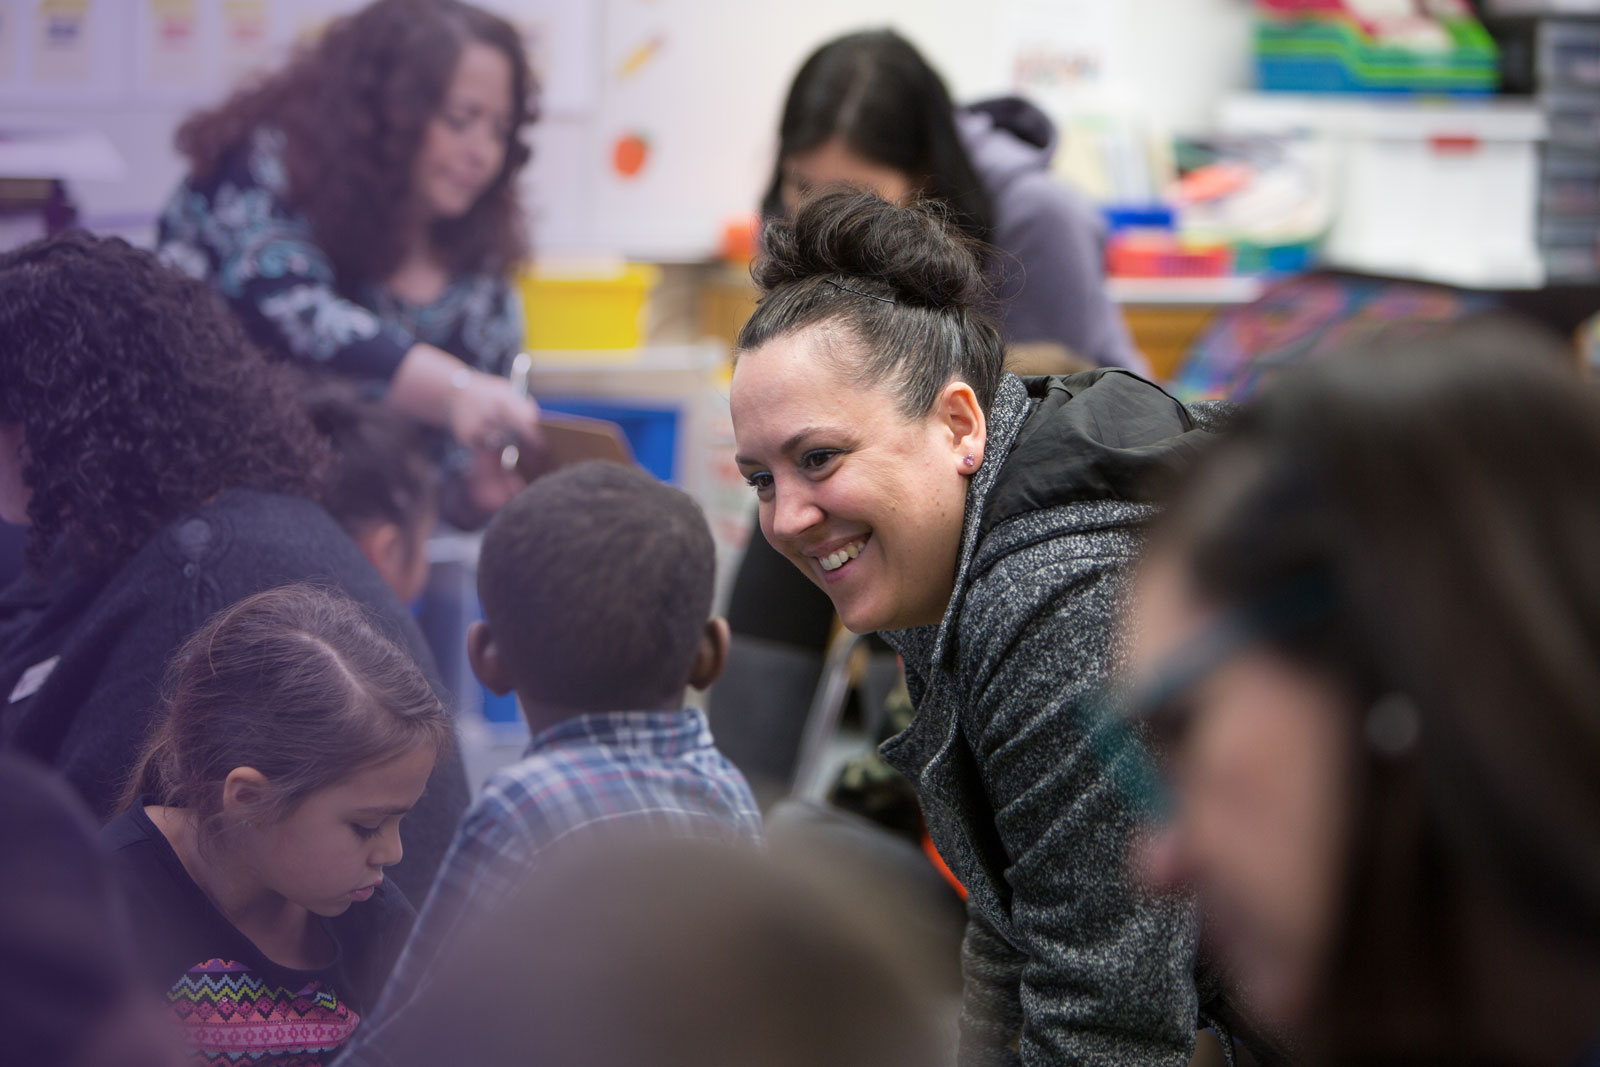 Leading inside the classroom: teacher smiles at student